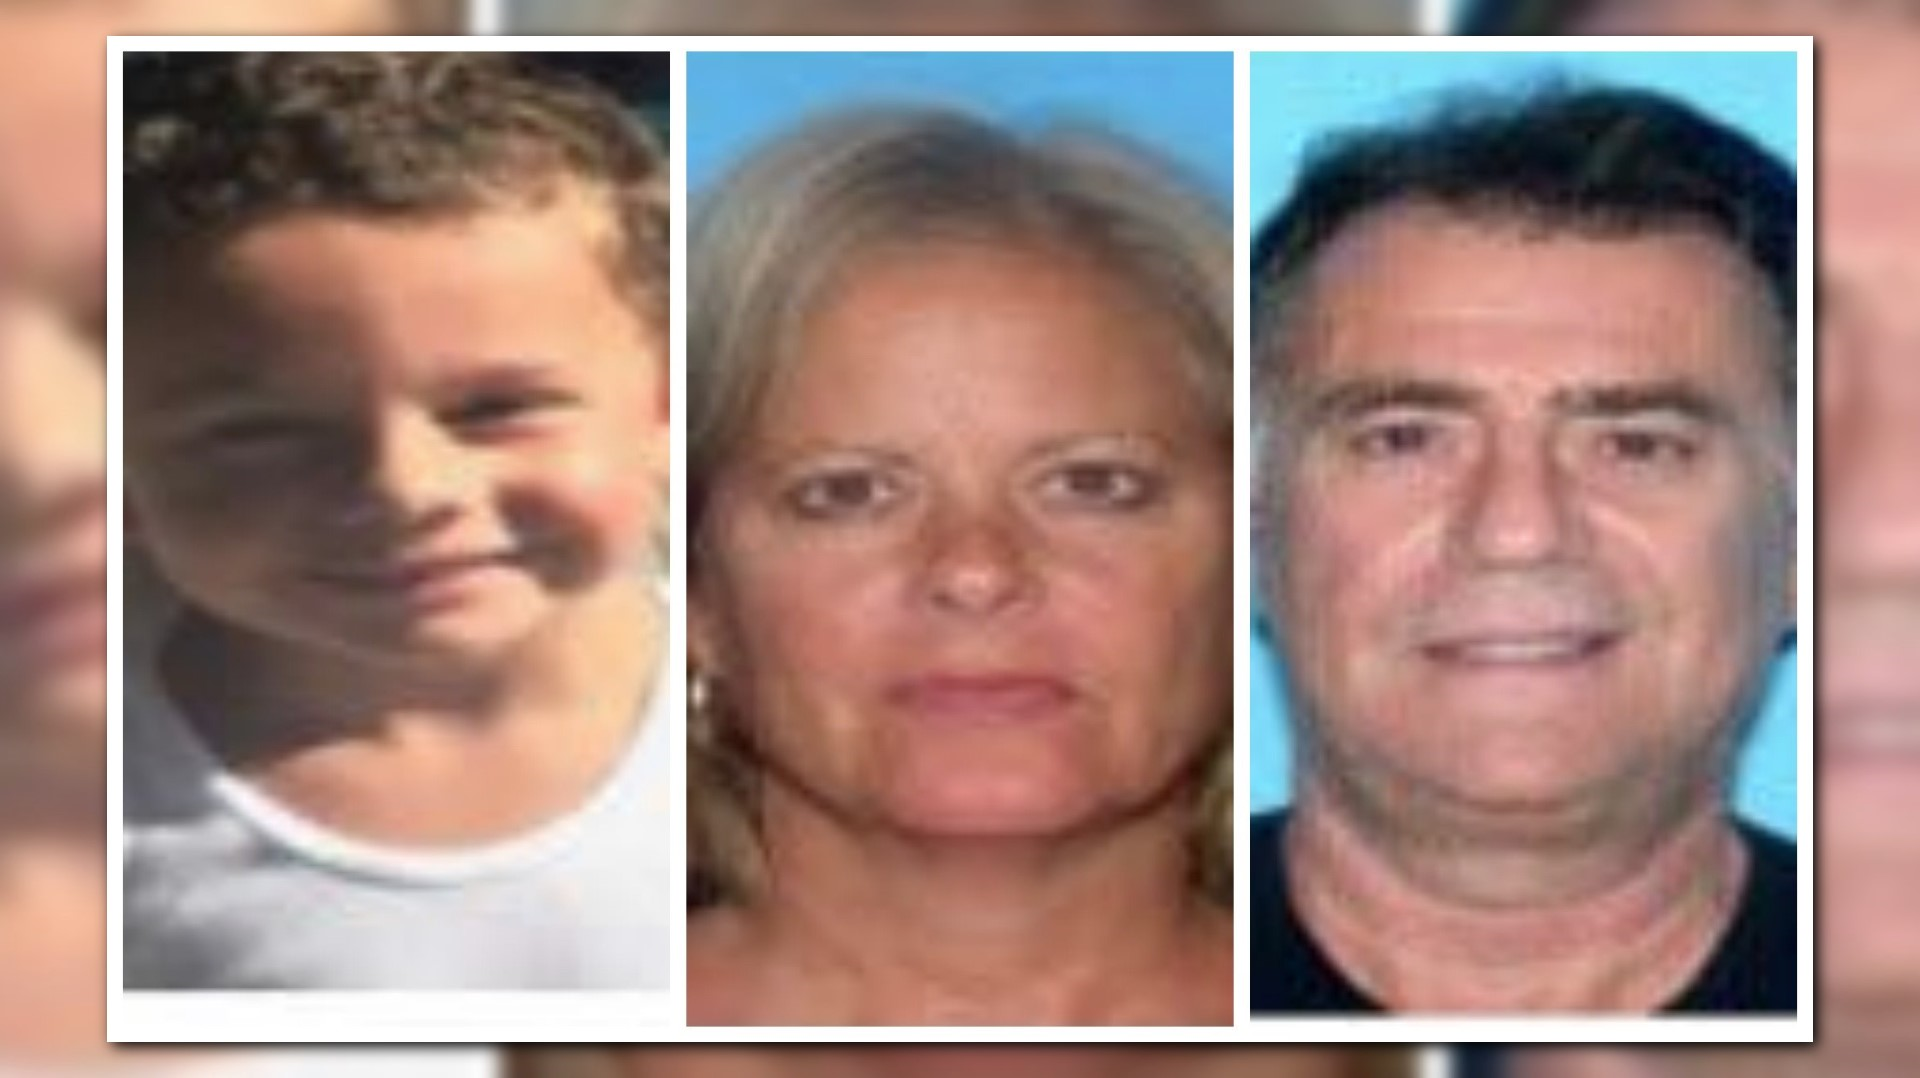 AMBER ALERT issued for missing Florida boy - First Coast News